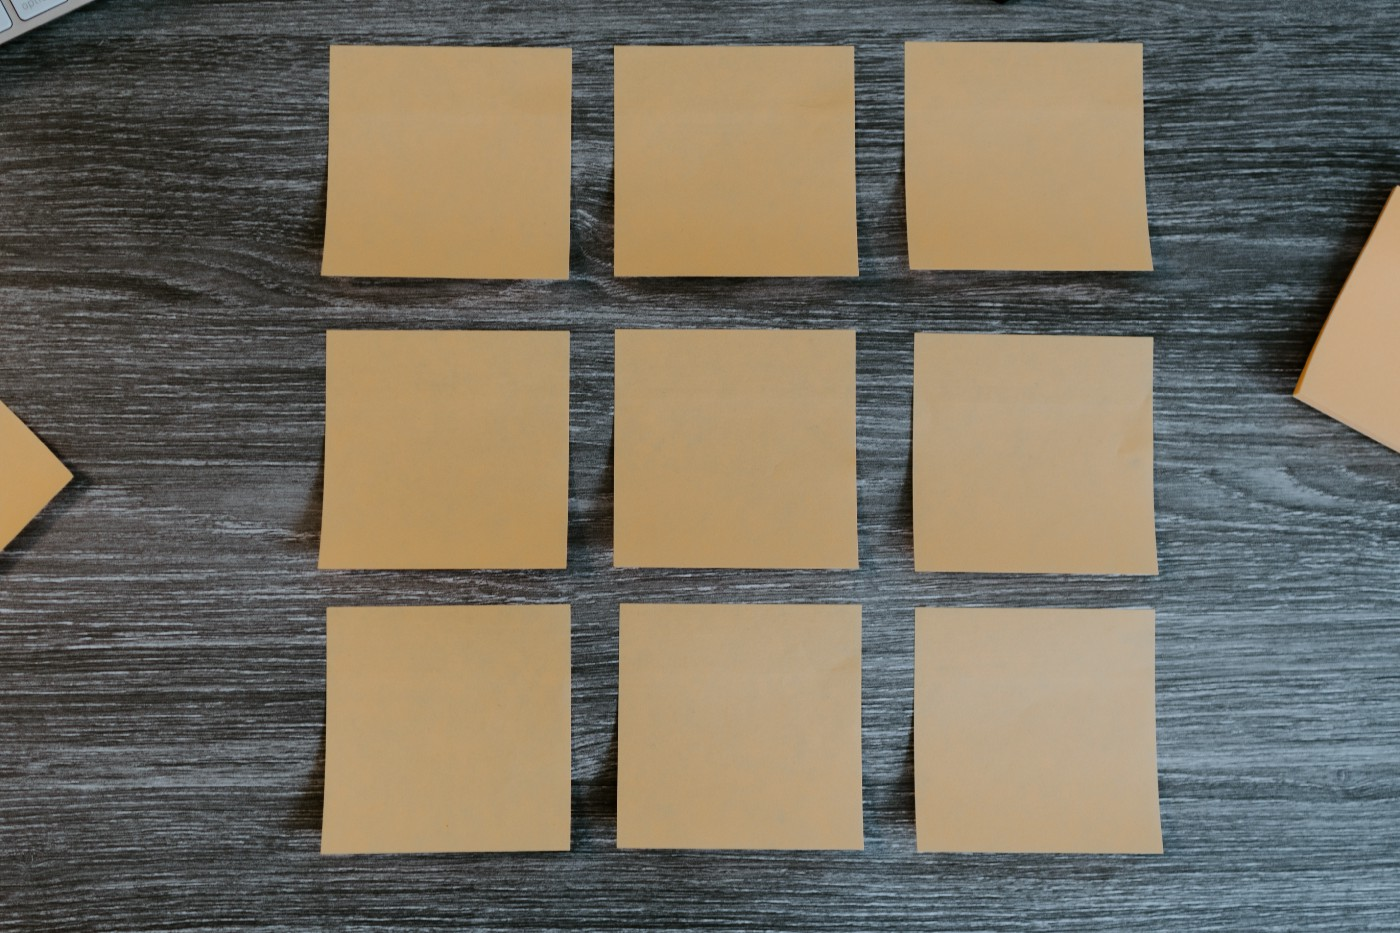 Nine posted notes organized making a big square